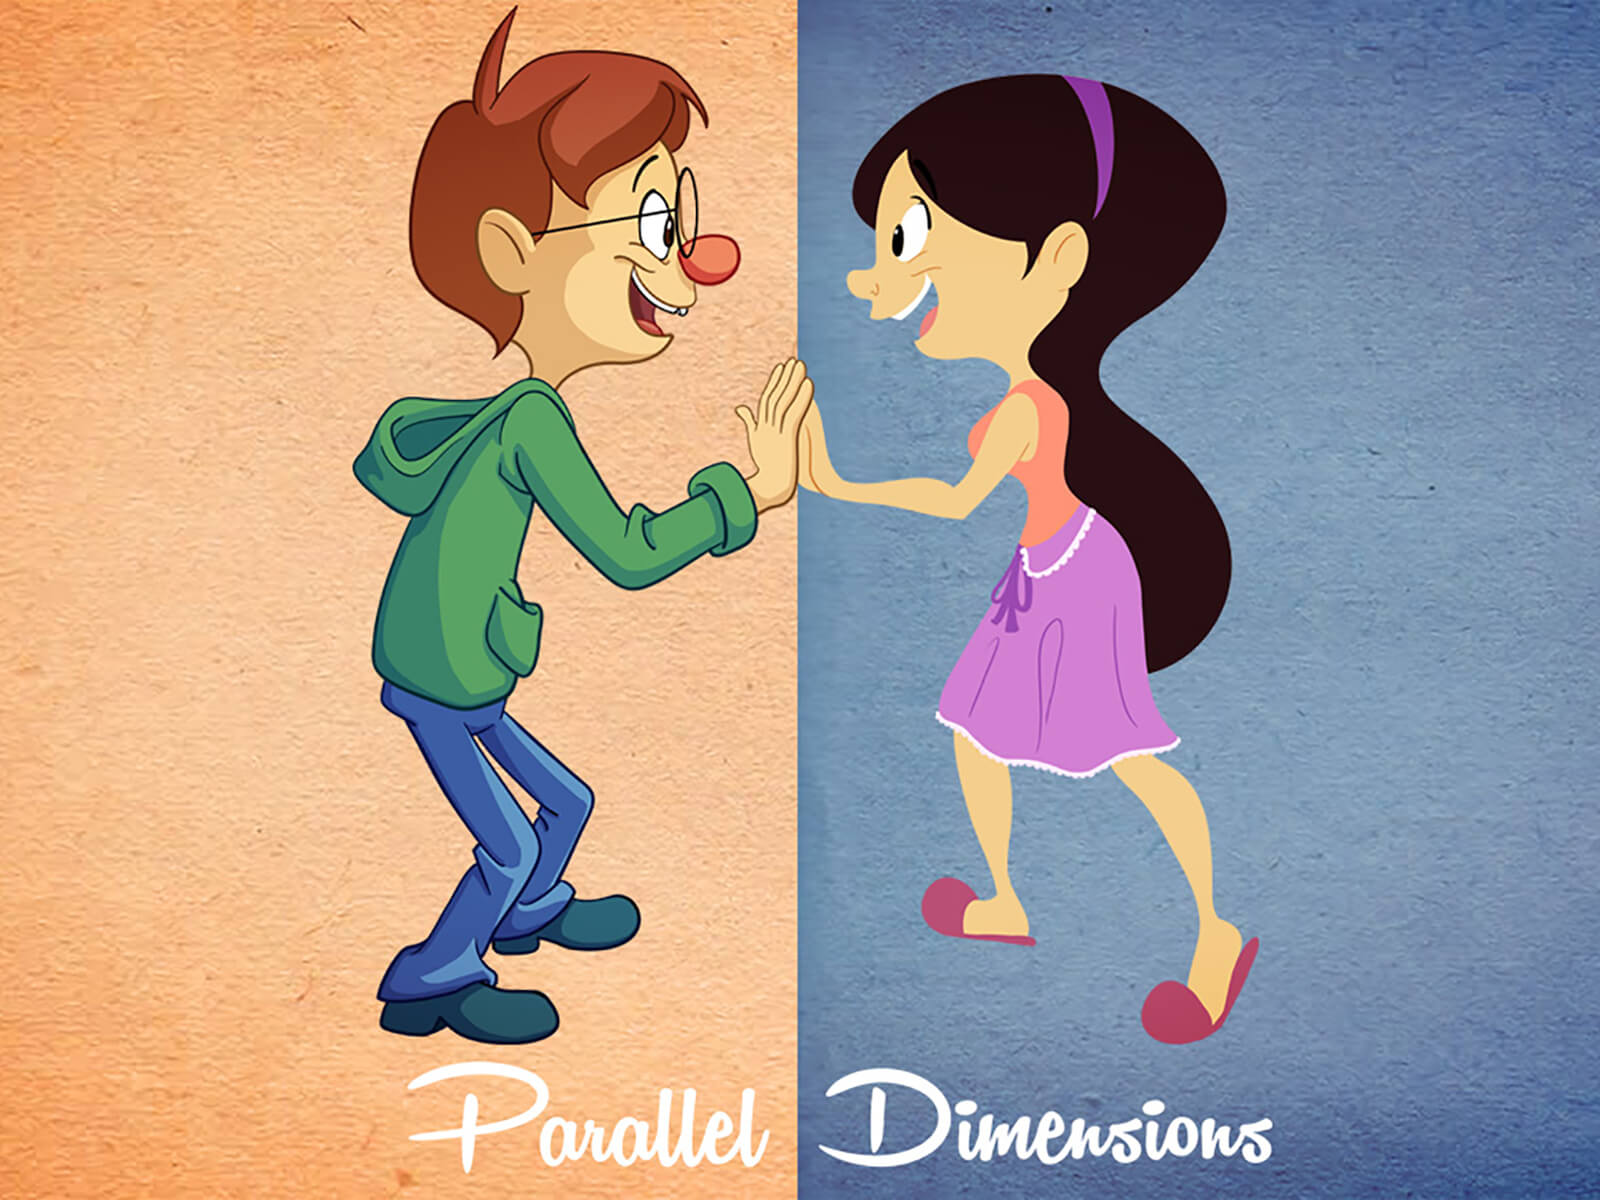 digital painting of cartoonish male and female characters giving each other a high five